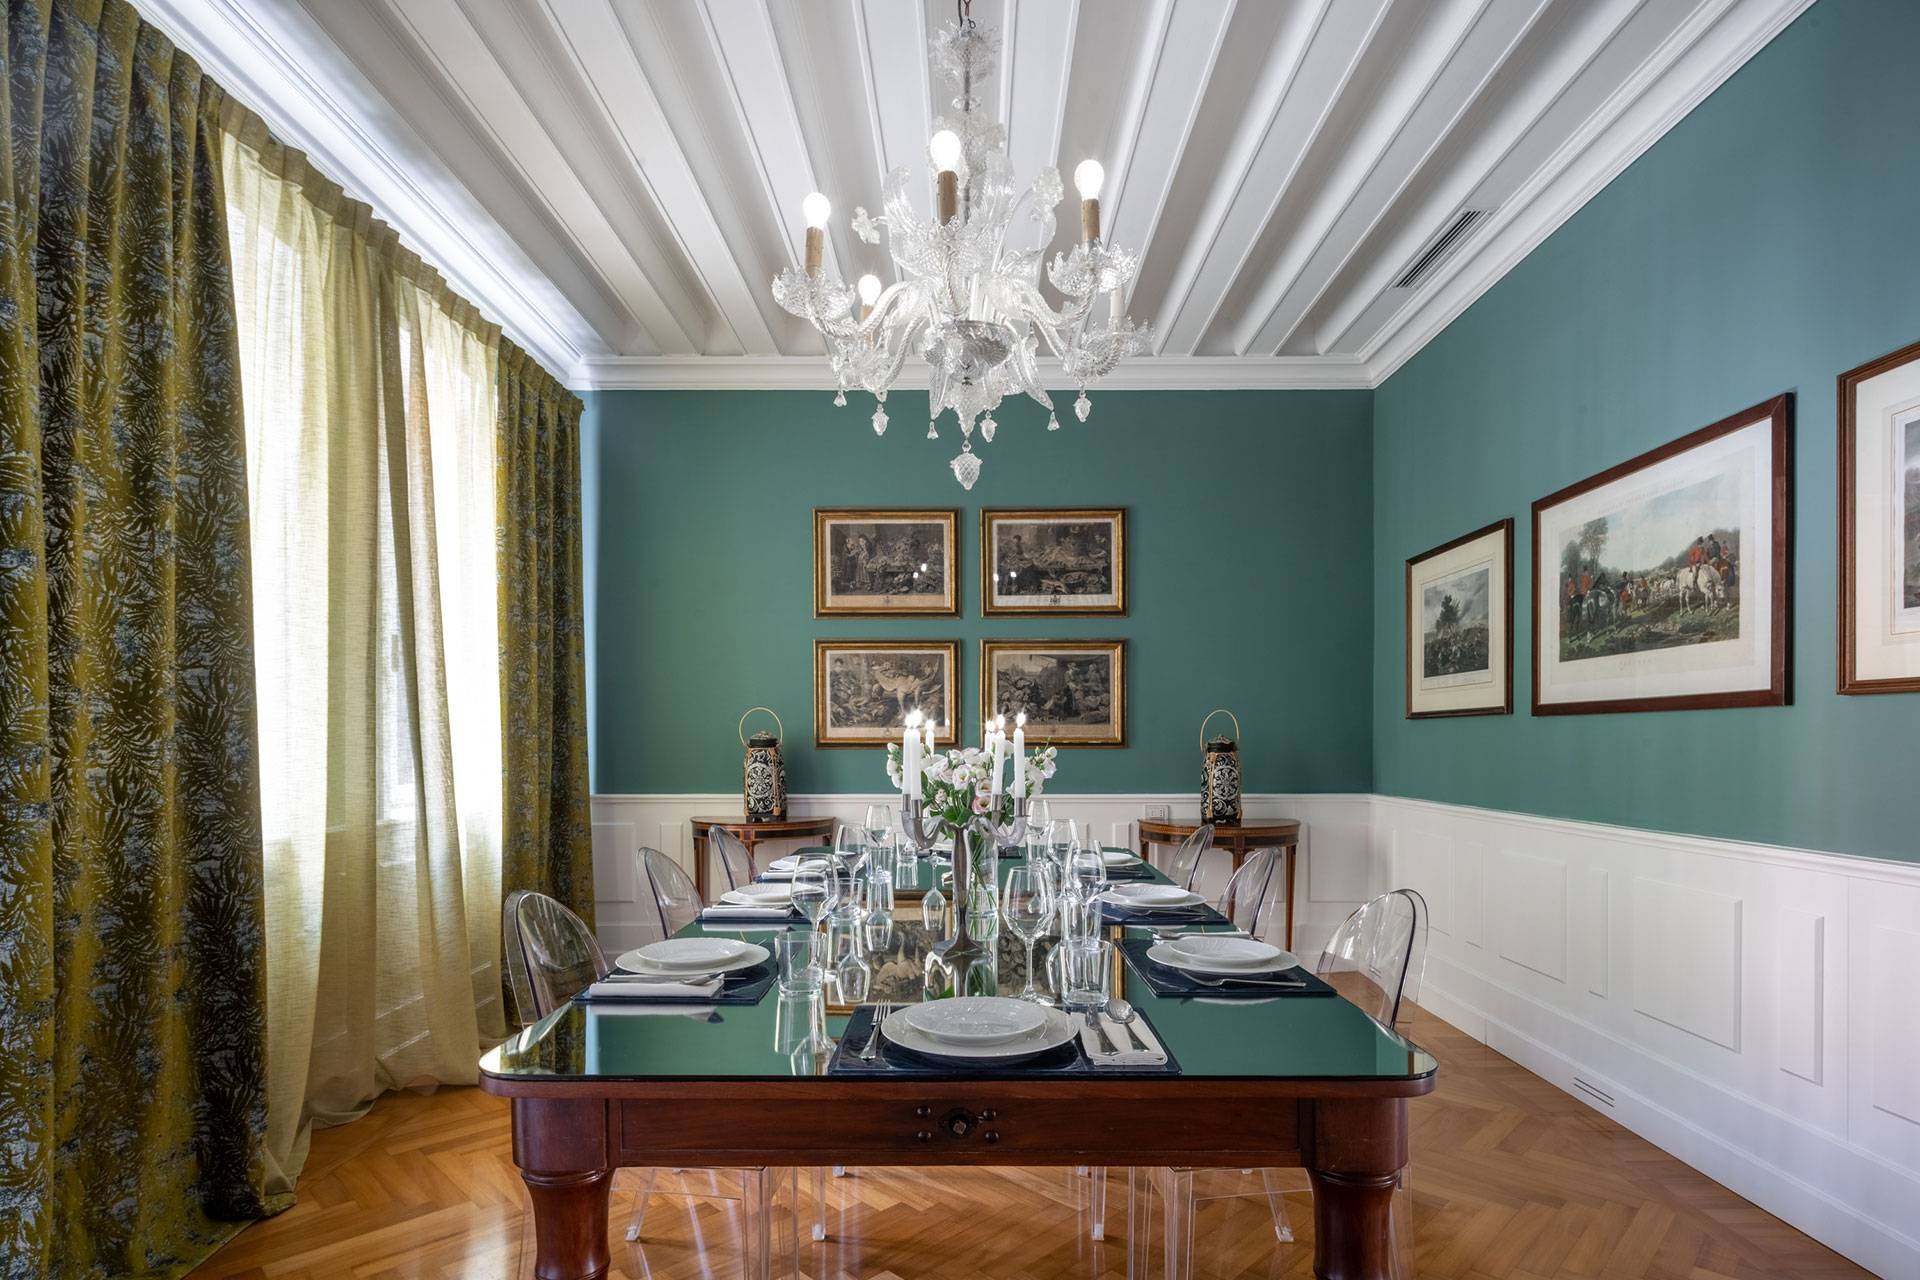 Classy and spacious dining room of the Dogaressa apartment